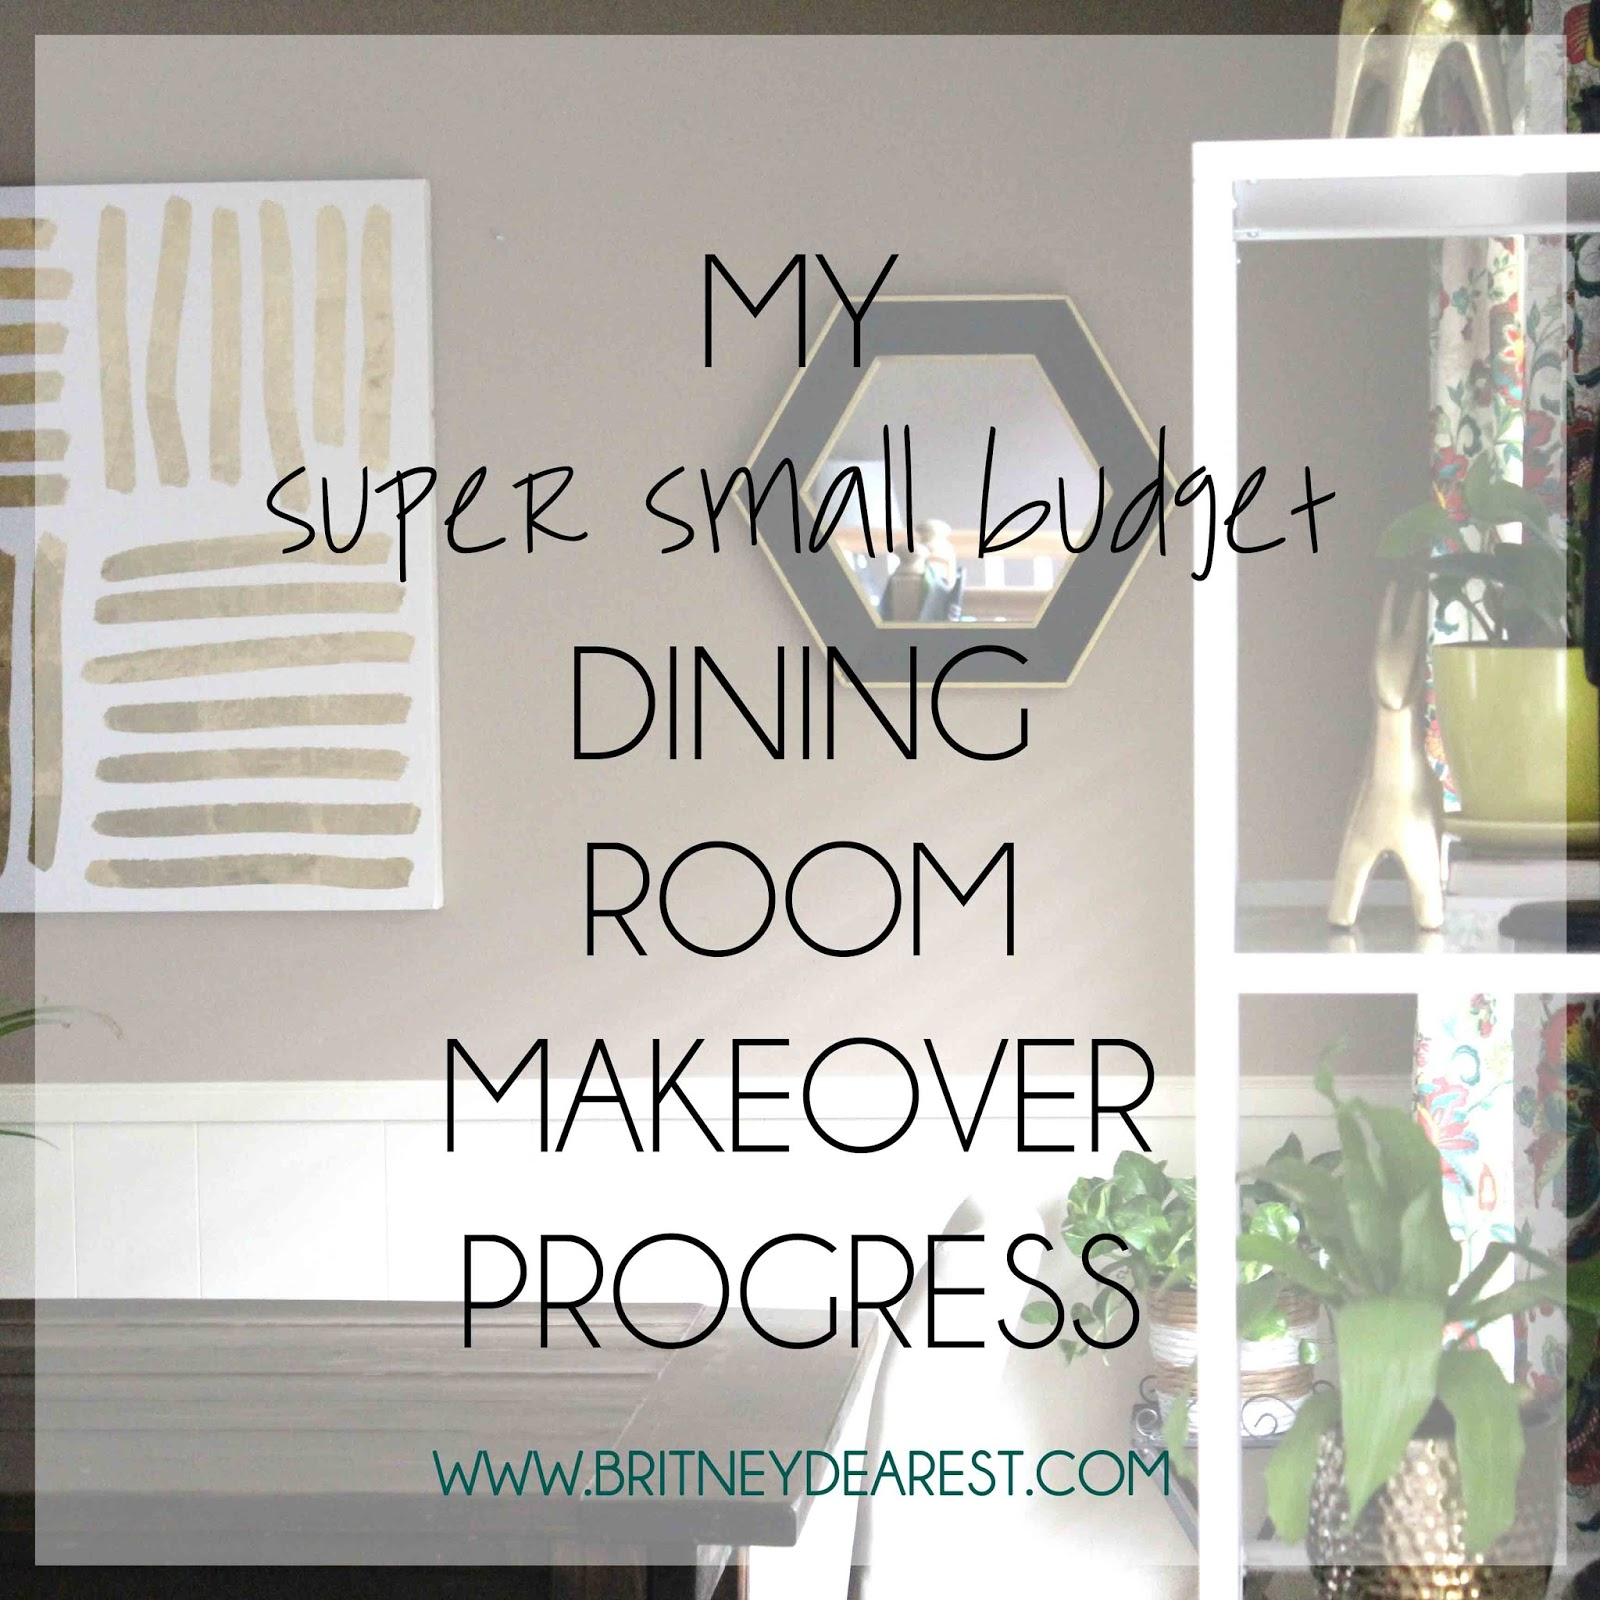 diy small living room makeover rooms with brown leather furniture britney dearest the progression of my dining home decorations budget how to